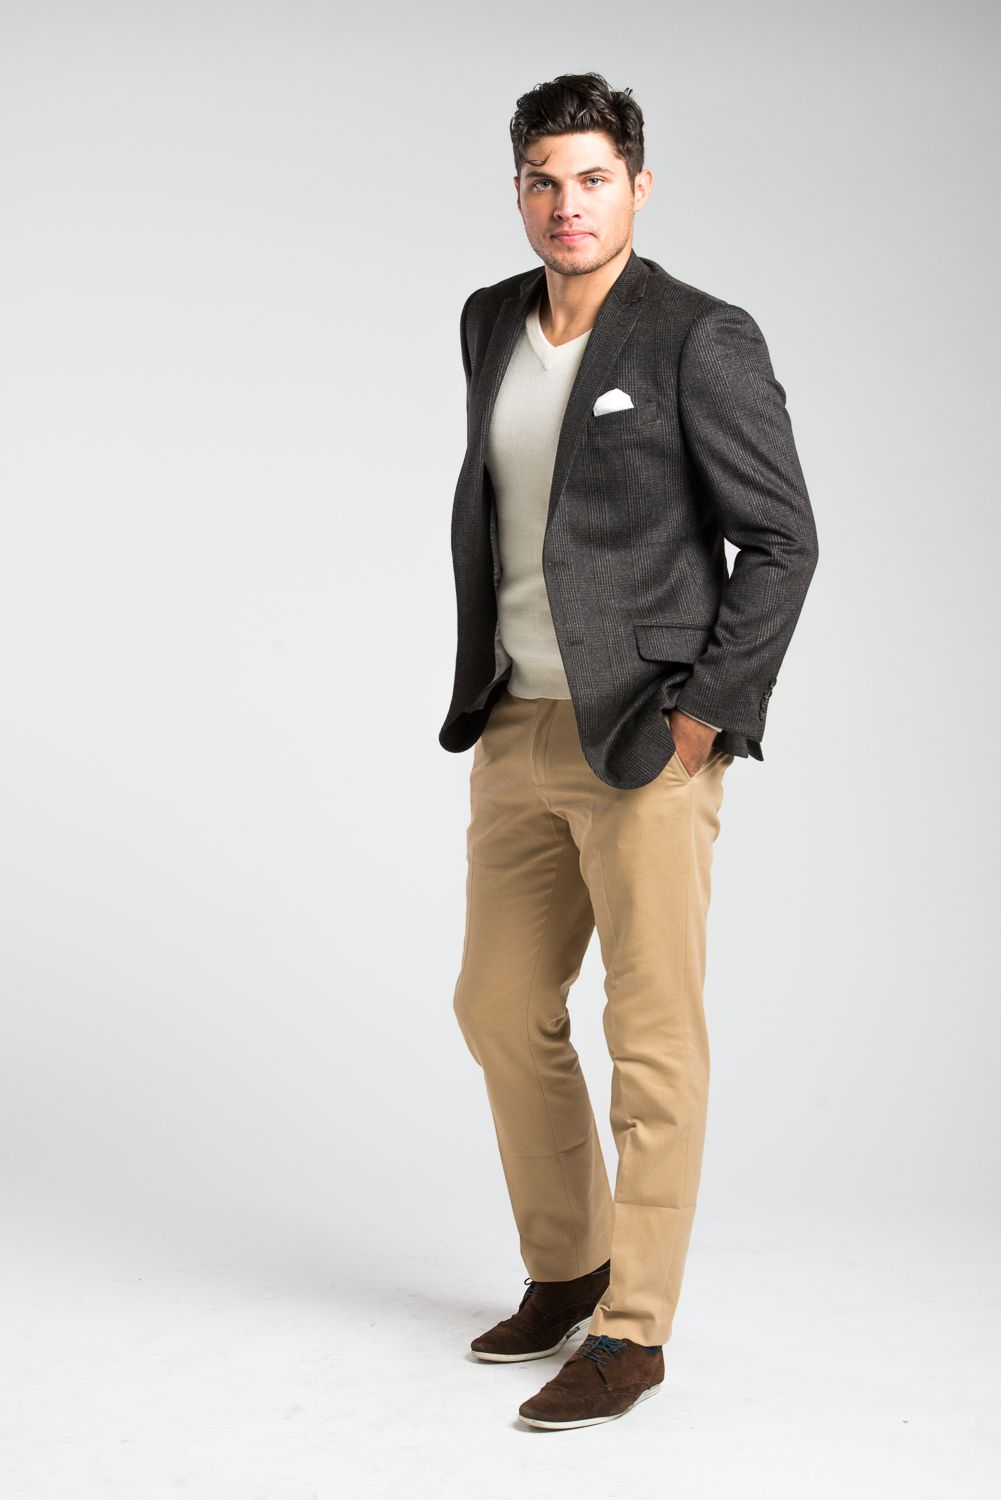 A Wilfred Newman Fawn check sport coat and khaki twill